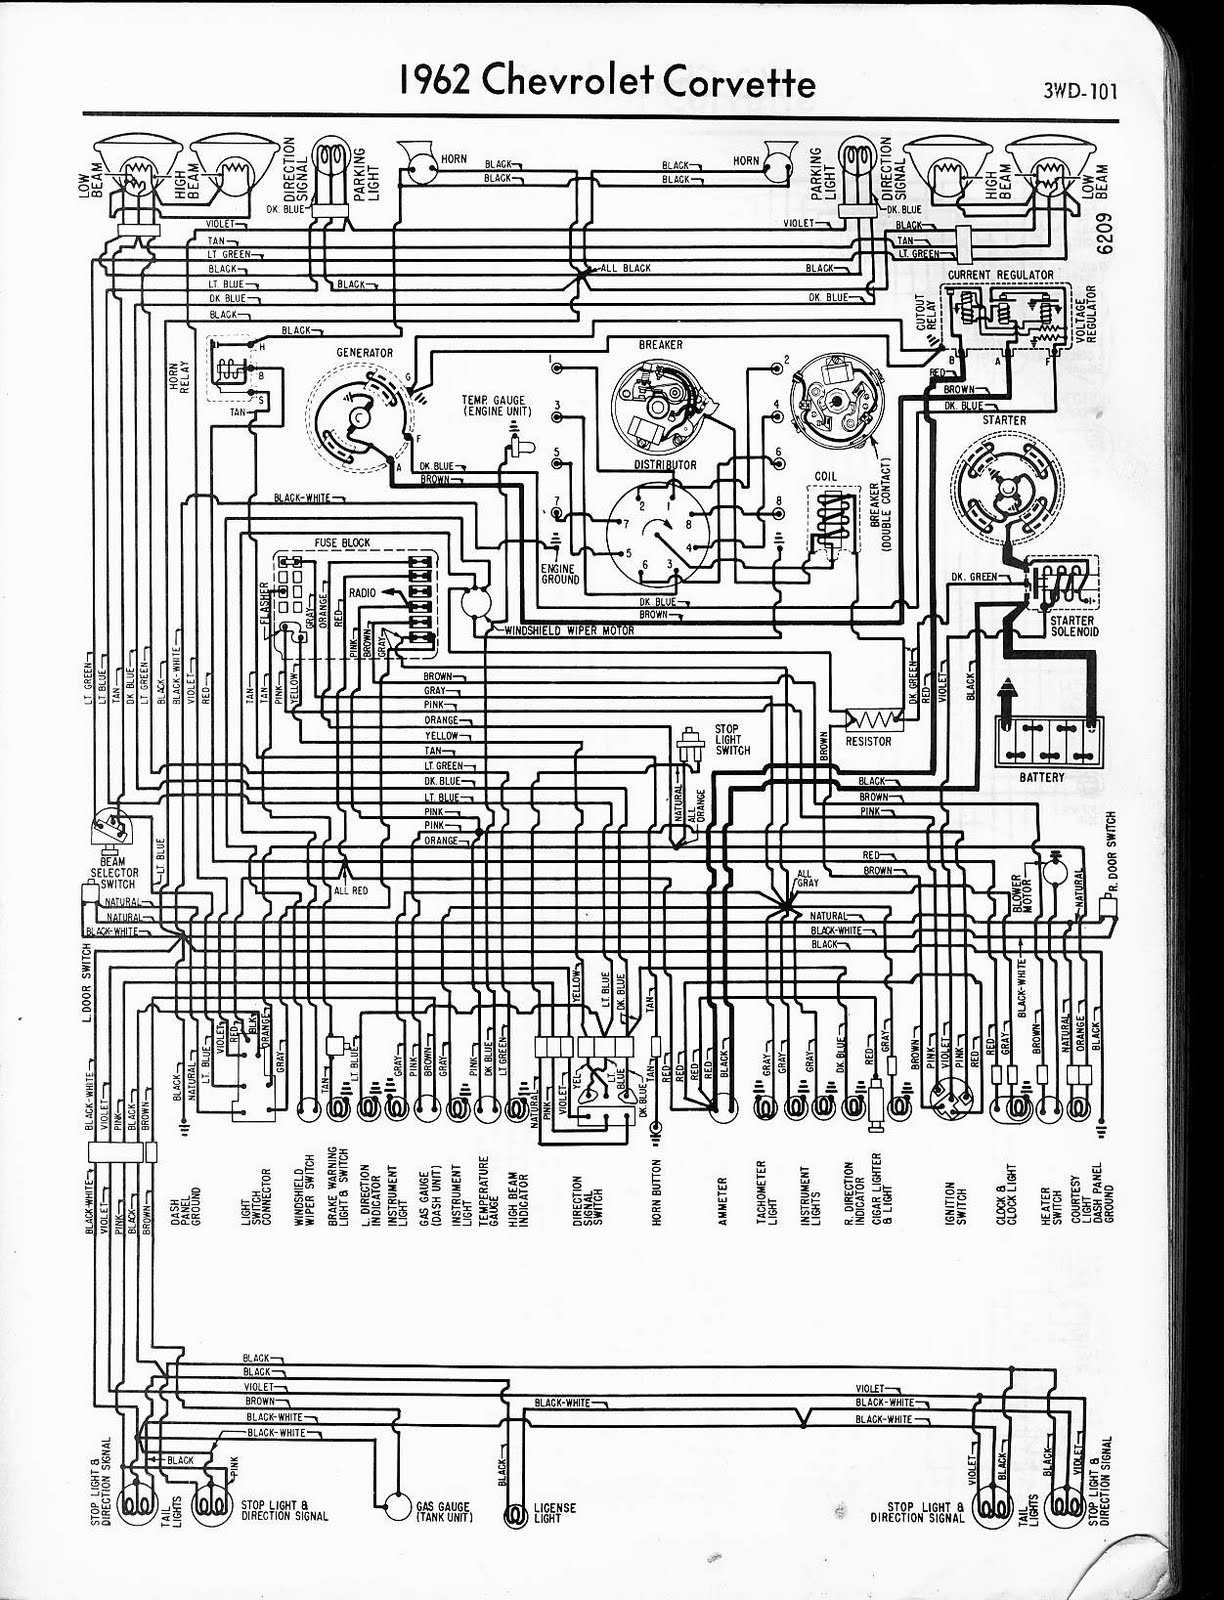 Chevrolet Corvette Wiring Diagram Free Picture C6 Diagrams Auto 1962 1972 73